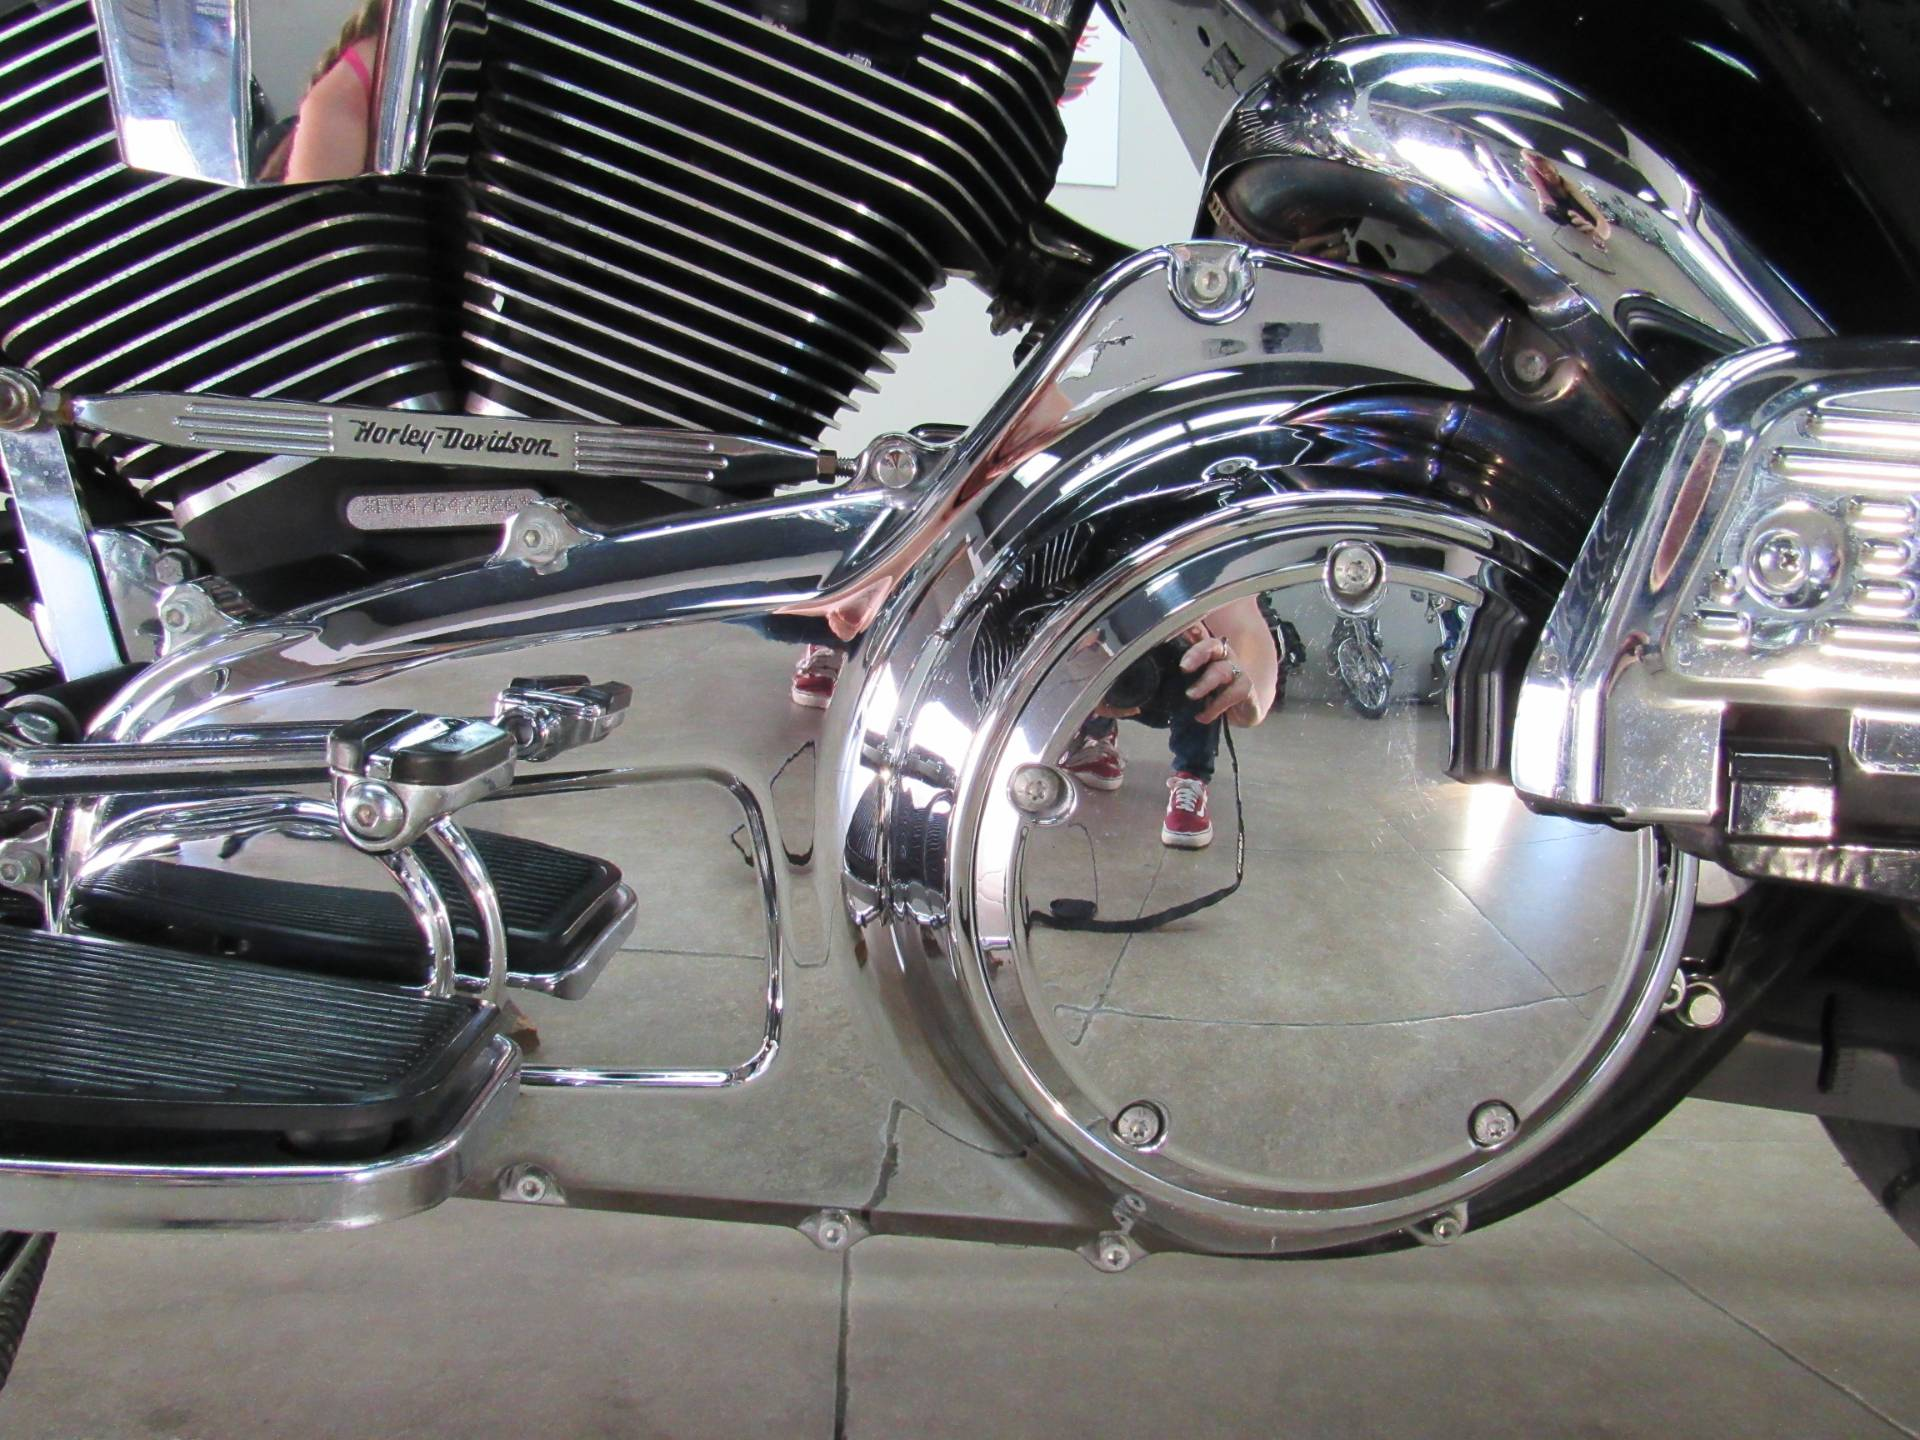 2007 Harley-Davidson FLHRC Road King® Classic in Temecula, California - Photo 23